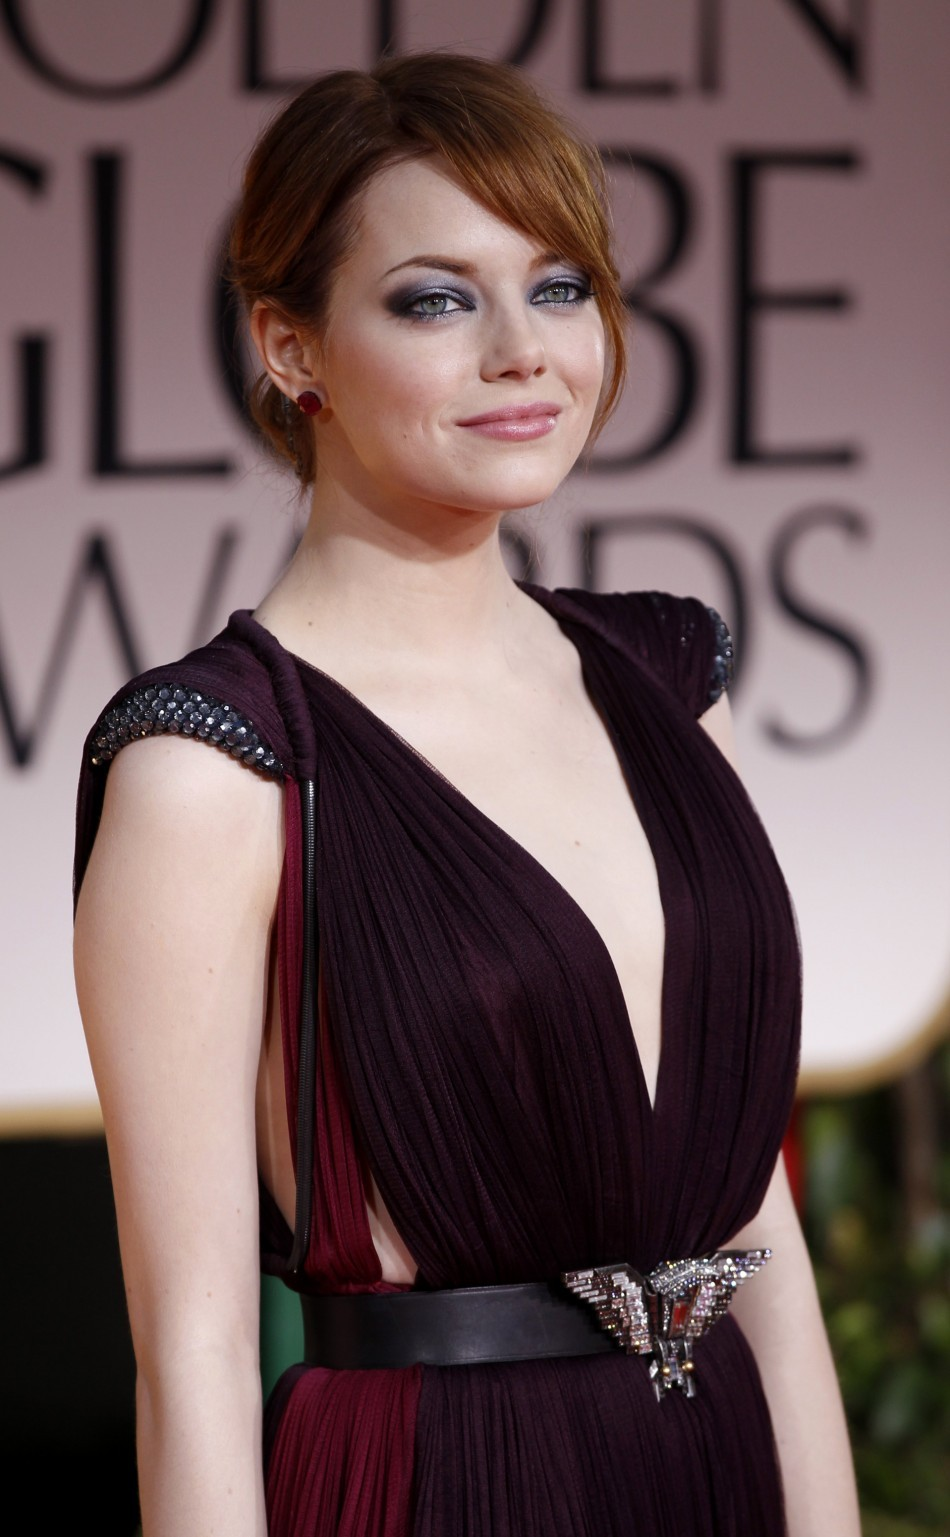 A naked selfie resembling American actress Emma Stone has been revealed to be a hoax.